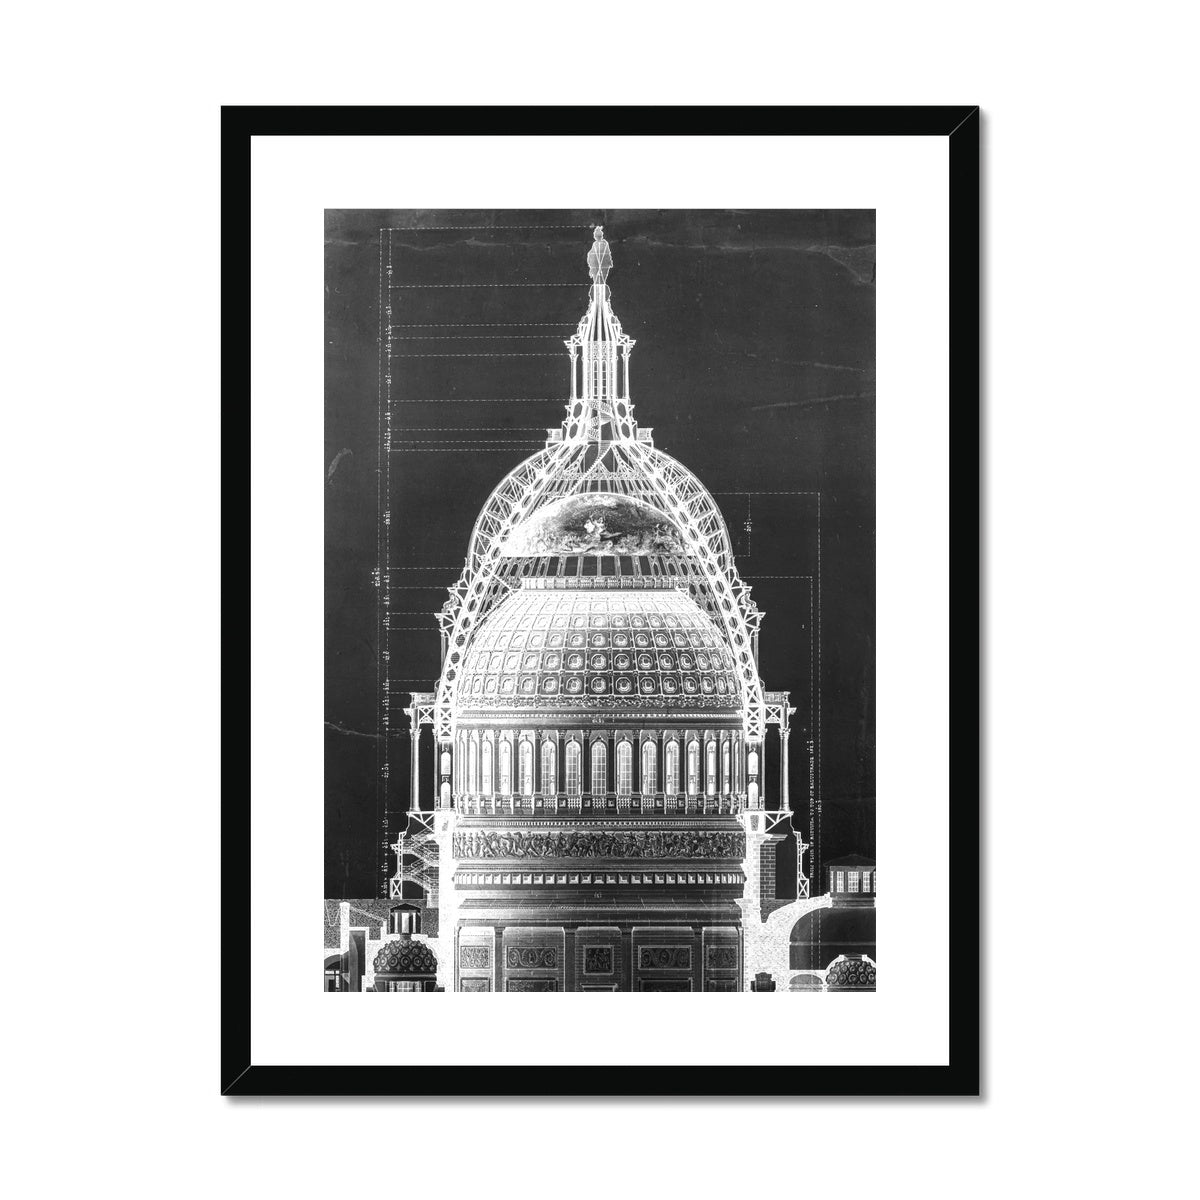 The U.S. Capitol Building - Dome Cross Section - Black -  Framed & Mounted Print